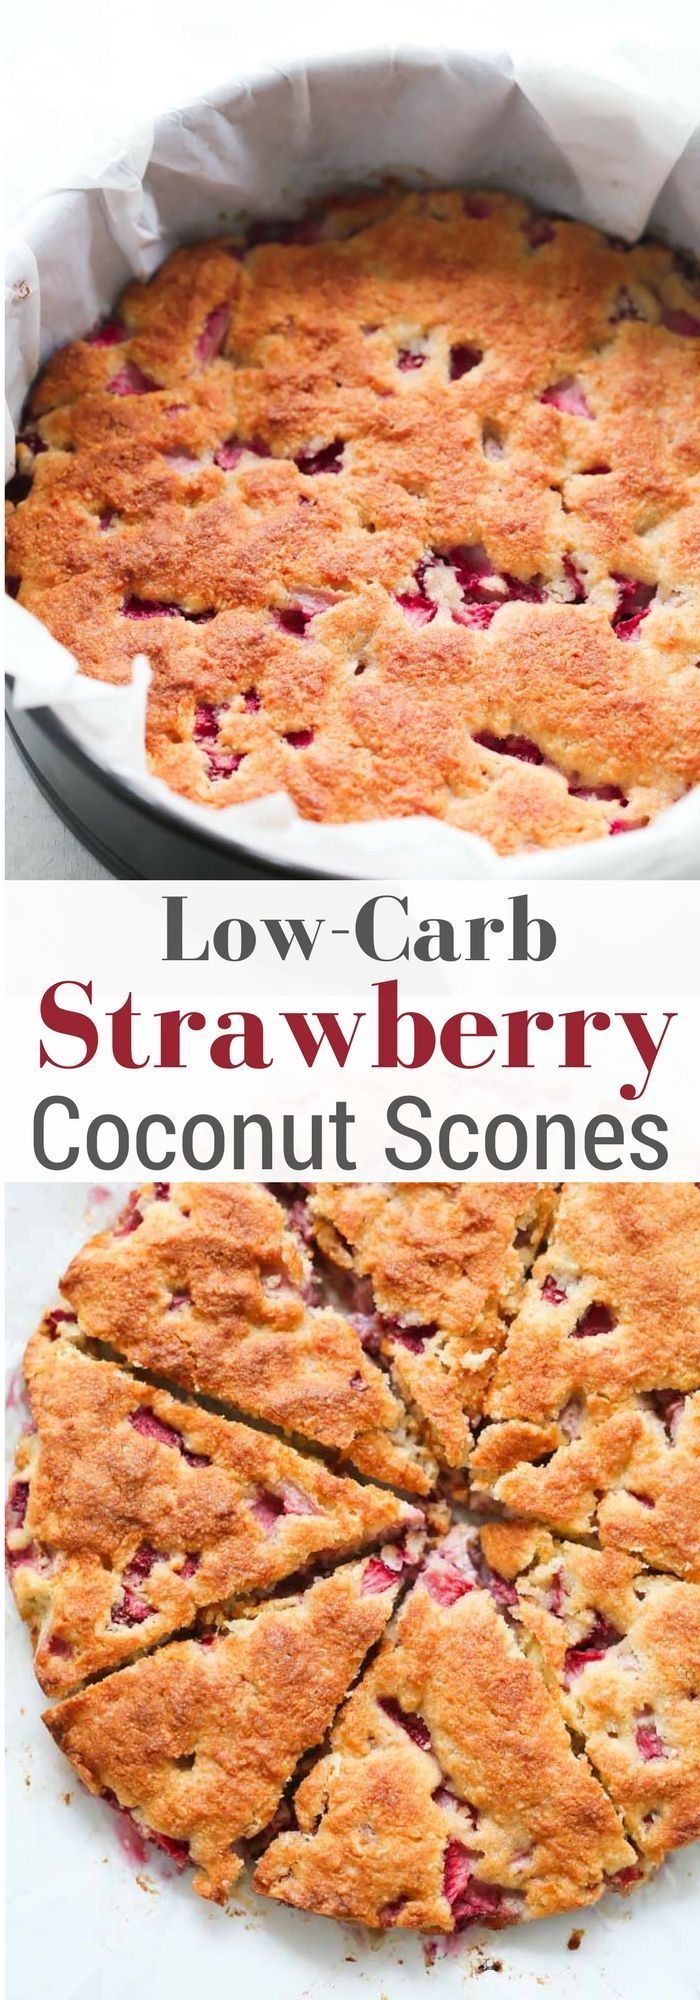 These Low-carb Strawberry Coconut Scones are gluten-free and made with almond flour, shredded coconut and fresh juicy strawberries. (Gluten Free Recipes Biscuits)